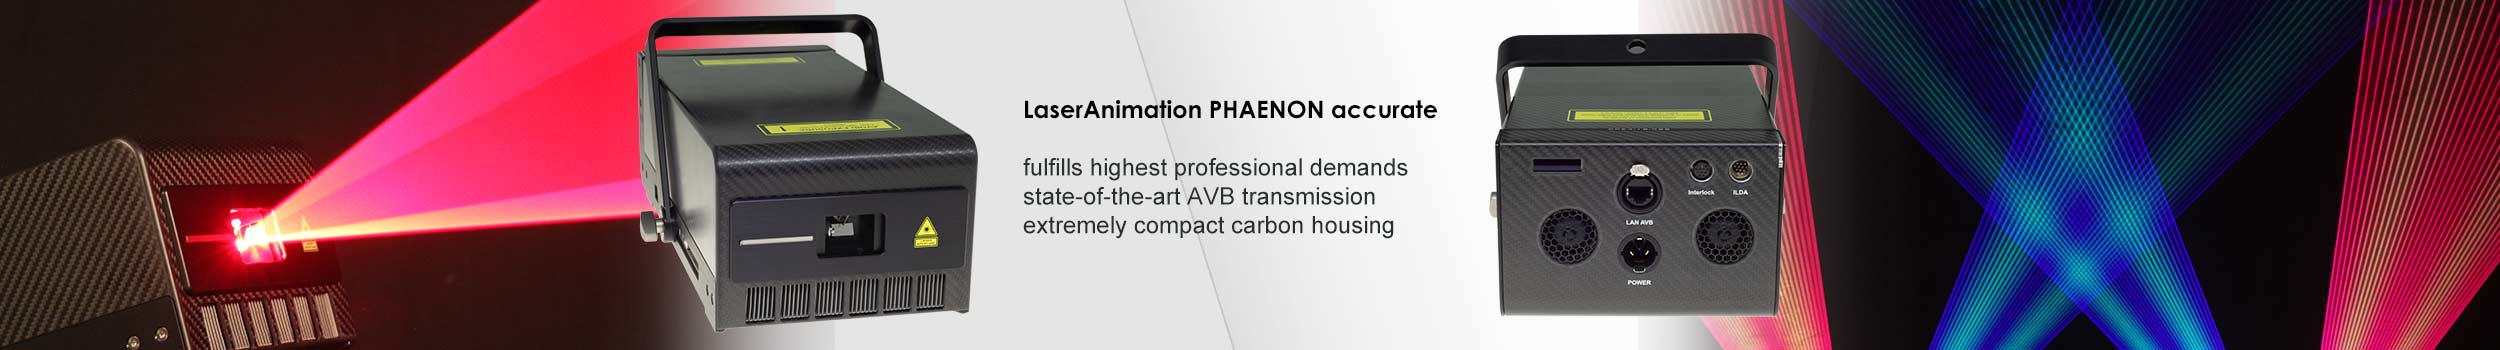 Laseranimation Phaenon accurate